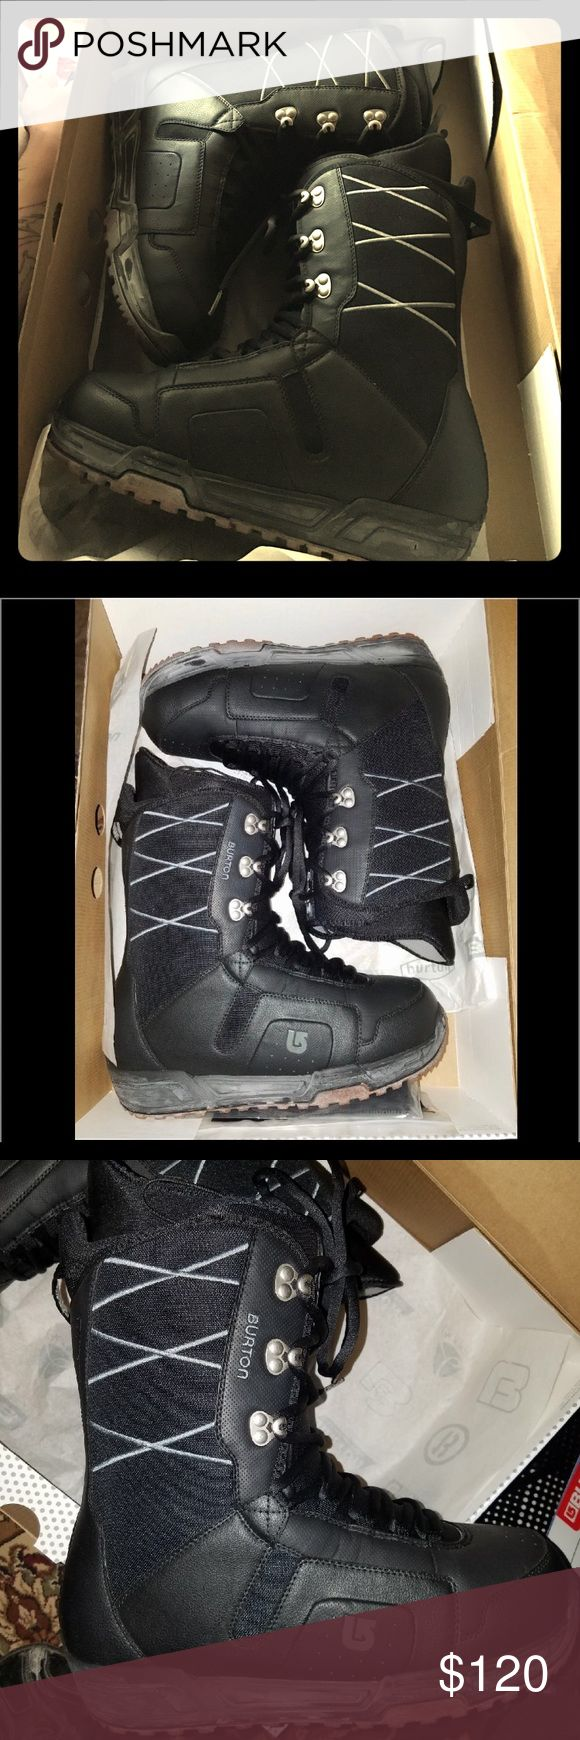 Burton black gray Men's snow boots Brand new, just been sitting in the closet. Burton Mend snow boots or snow boarding boots. (Just need bindings to make it snowboard boots) black gray moto boots 2006 Burton Shoes Boots